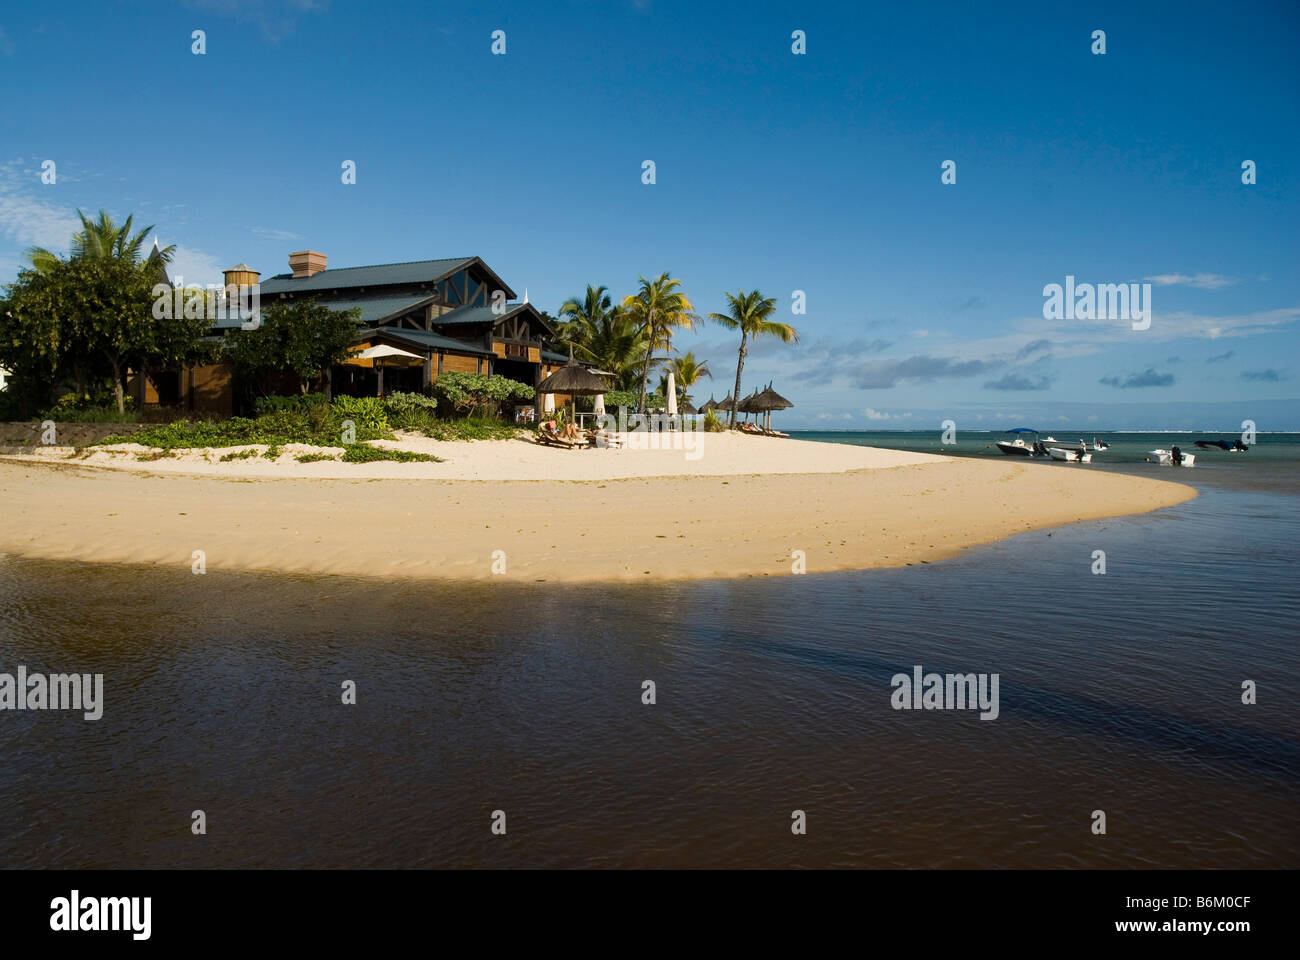 Hotel Le Telfair in Bel Ombre MAURITIUS ISLAND - Stock Image